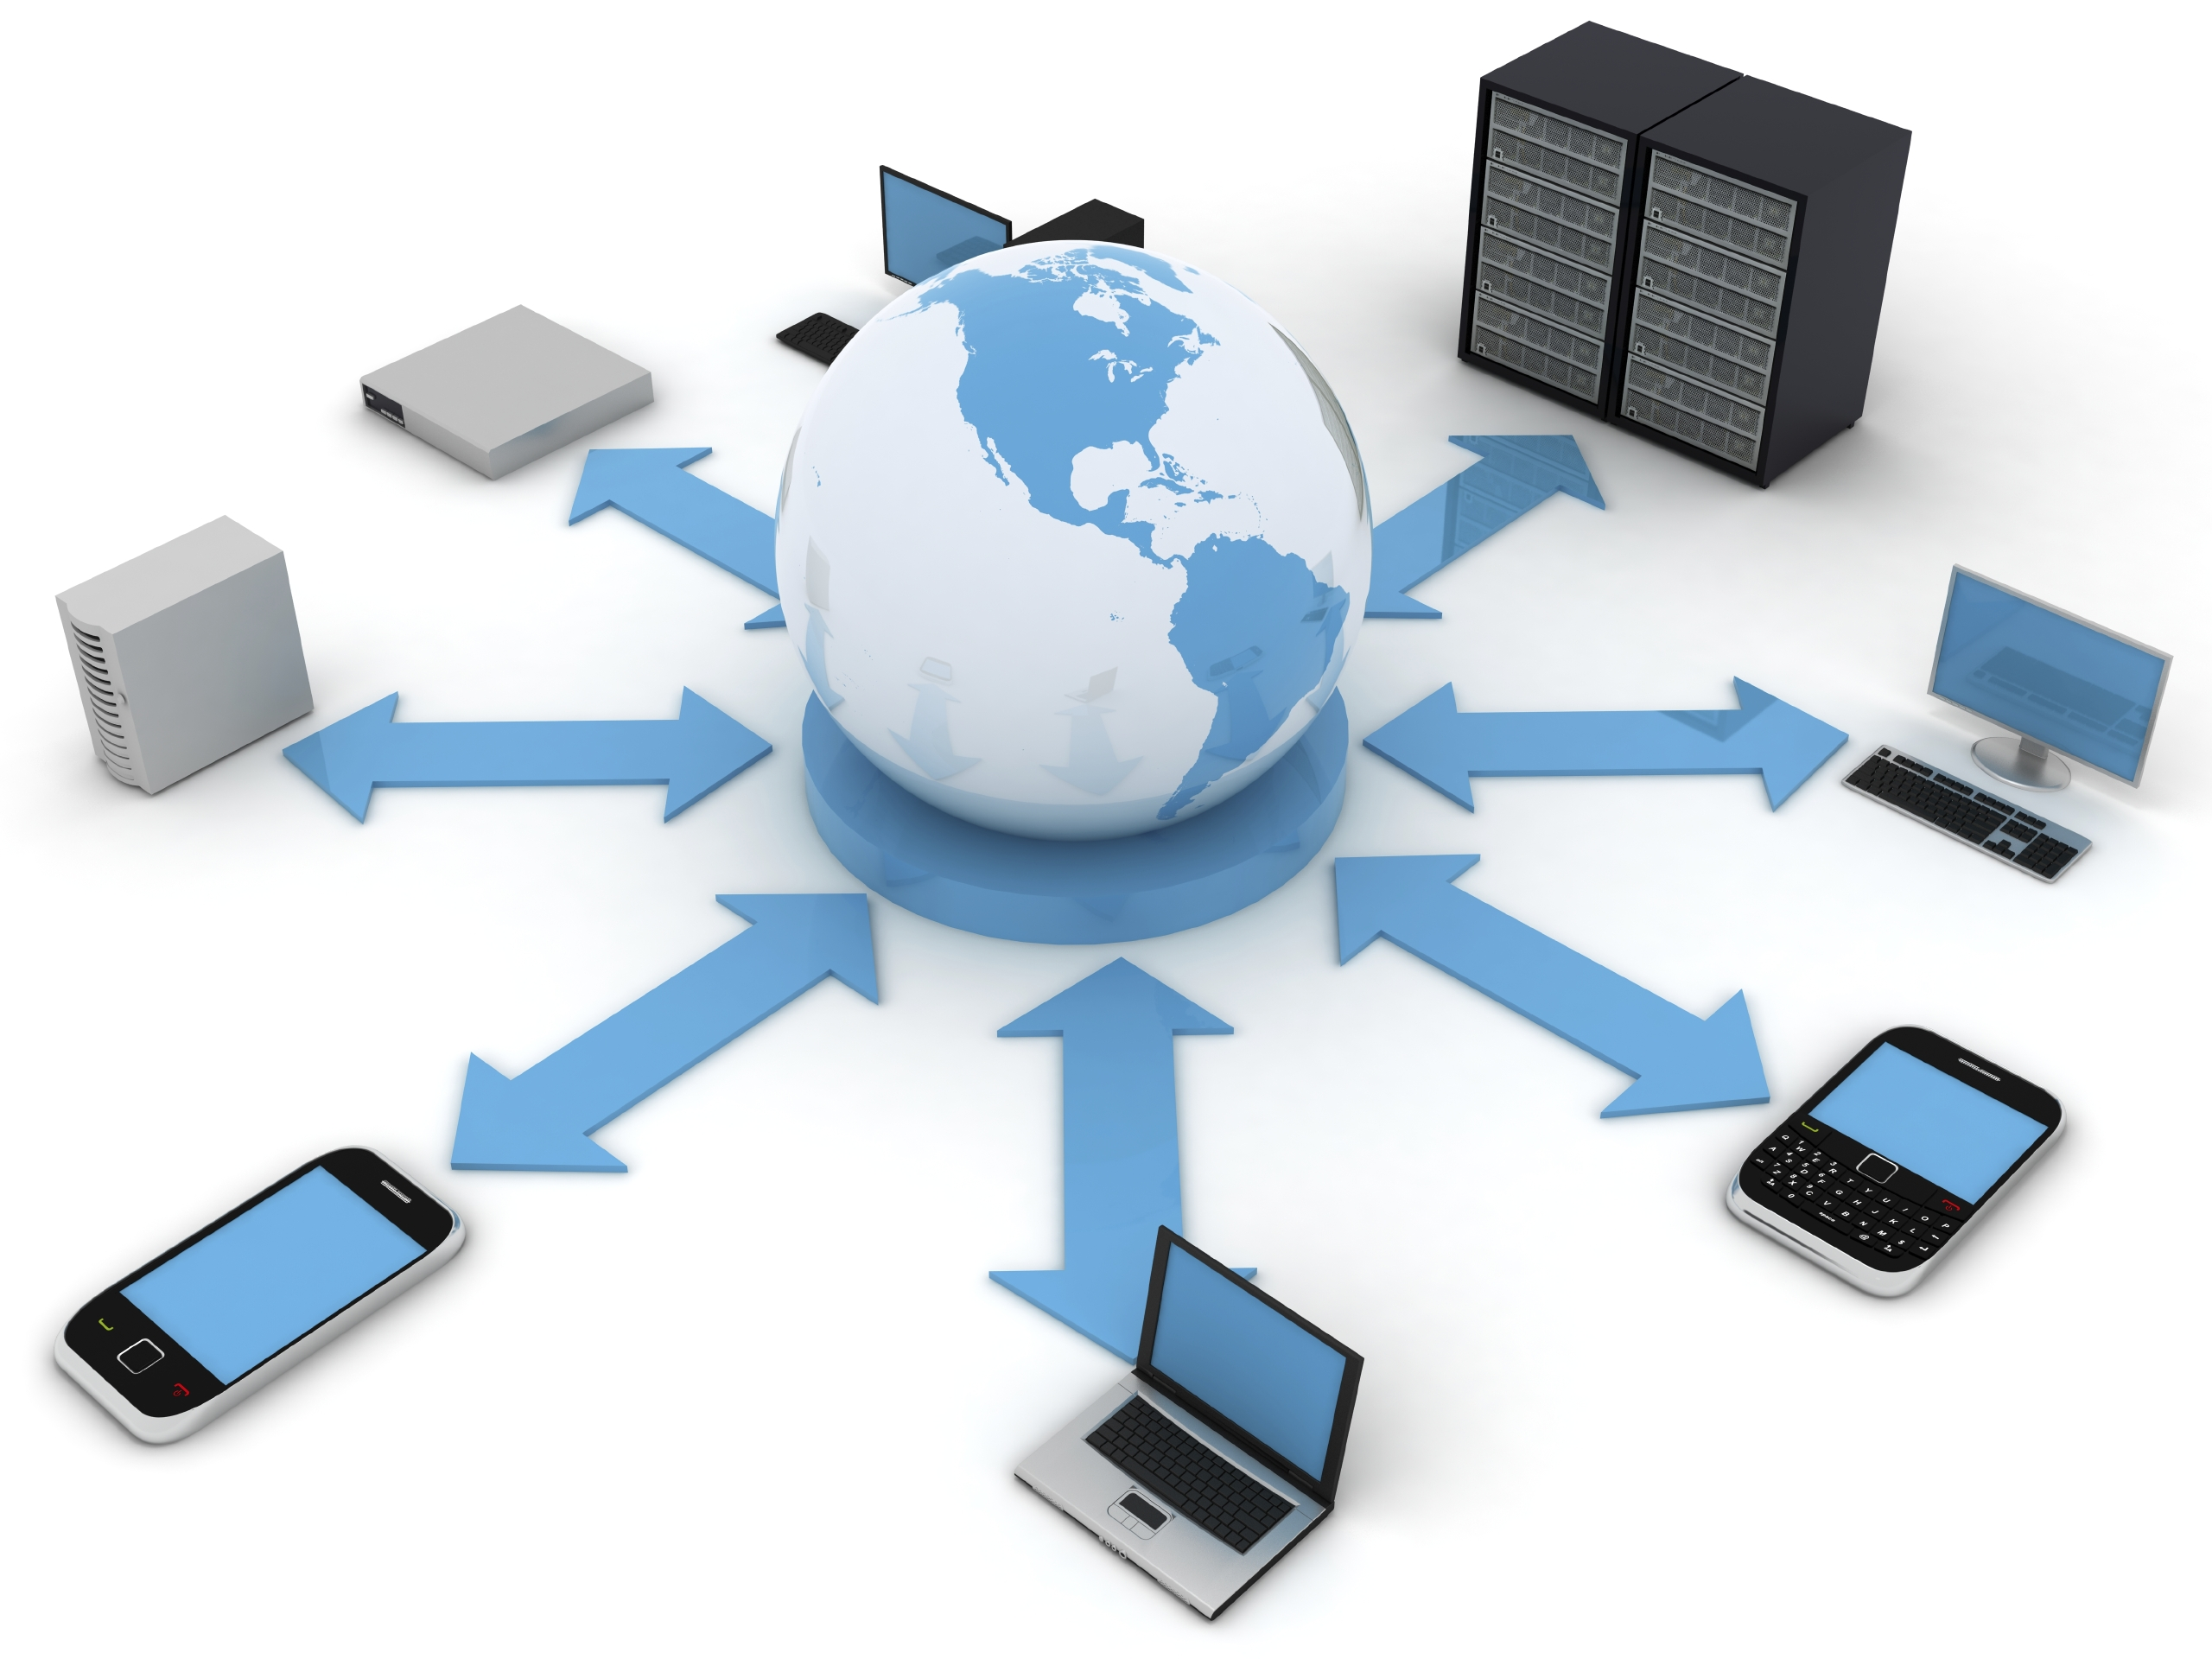 role of internet web technology Al gore is a former us senator who served as the vice president of the united states from 1993 to 2001, and is co-winner of the 2007 nobel peace prizein the 1980s and 1990s, he promoted legislation that funded an expansion of the arpanet, allowing greater public access, and helping to develop the internet.